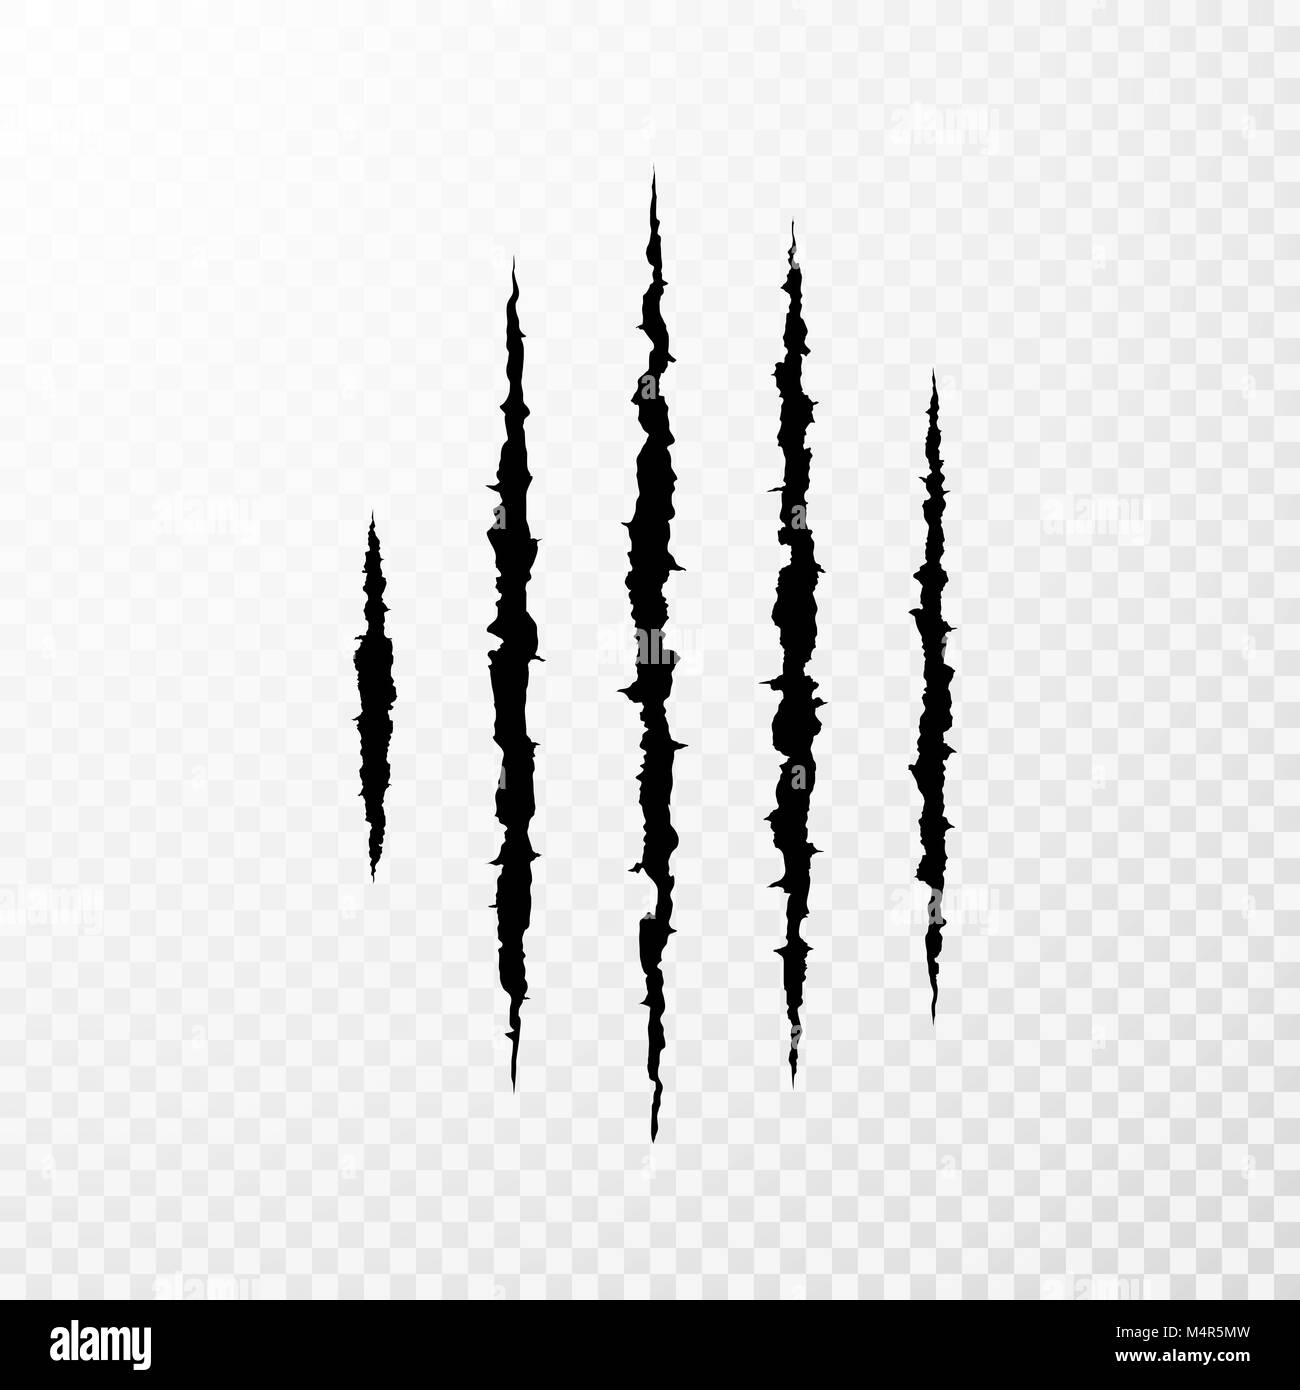 Traces from the claws of the monster. Claw scratch mark. Animal scratch isolated on transparent background. Shred - Stock Image